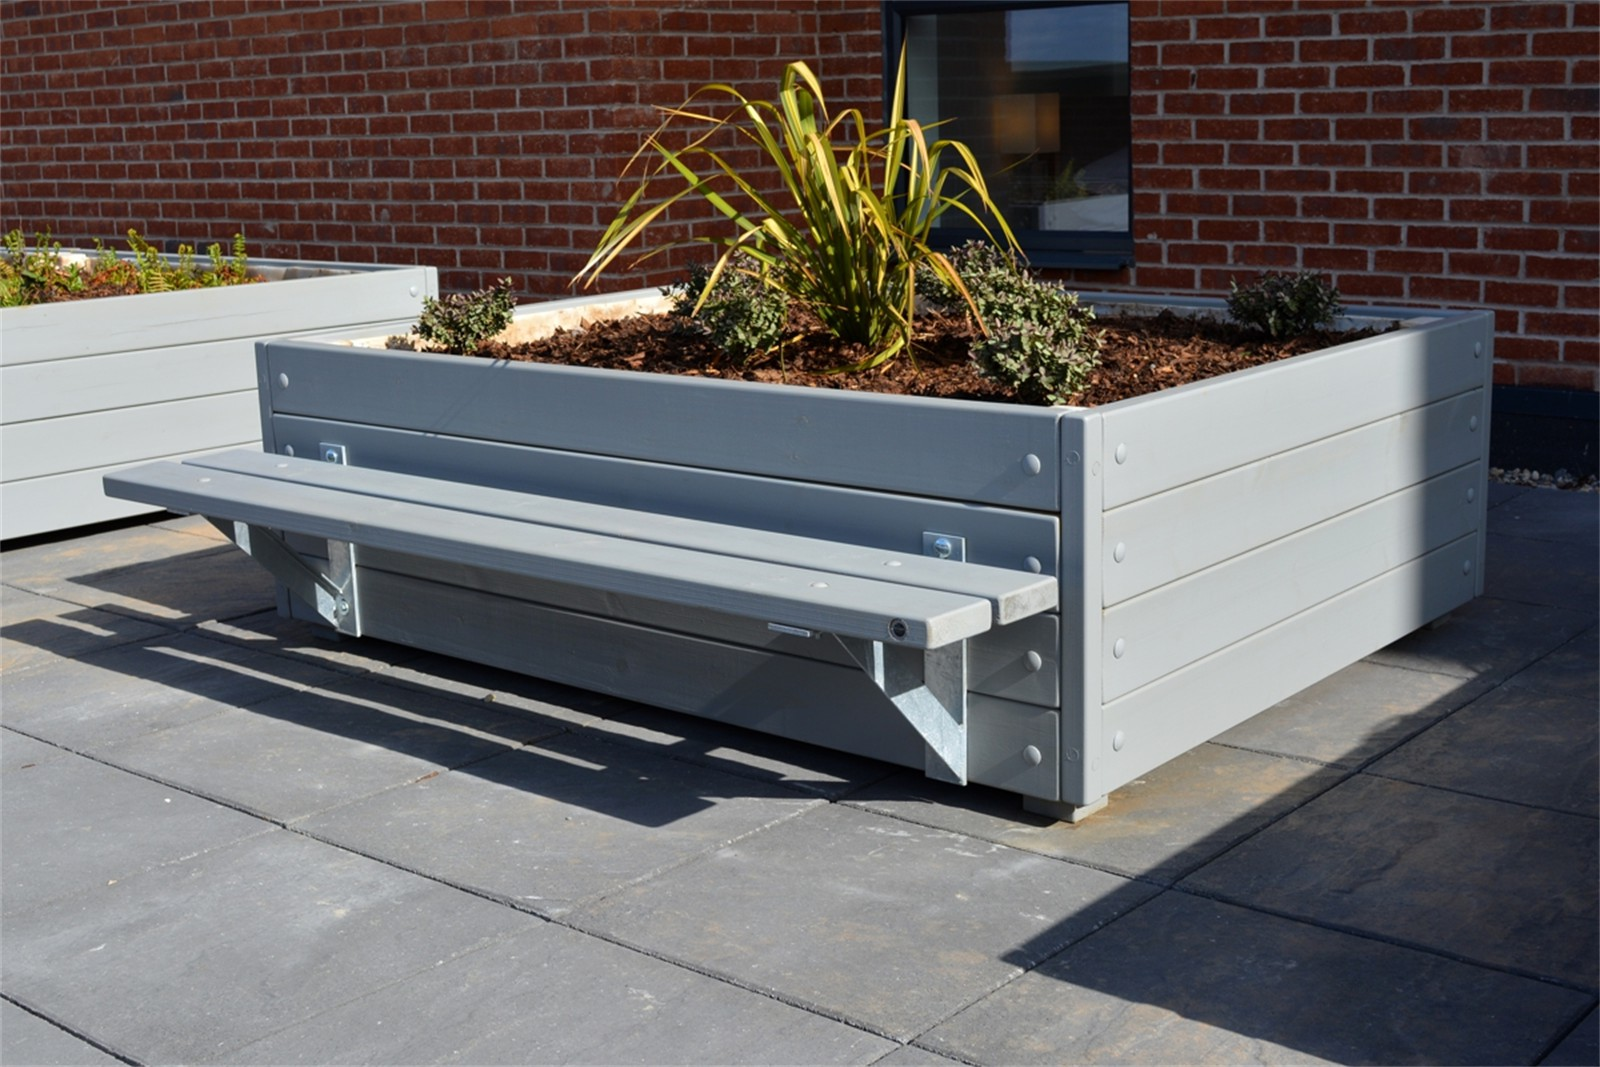 20pgr47 - Grenadier planter with Henley planter bench